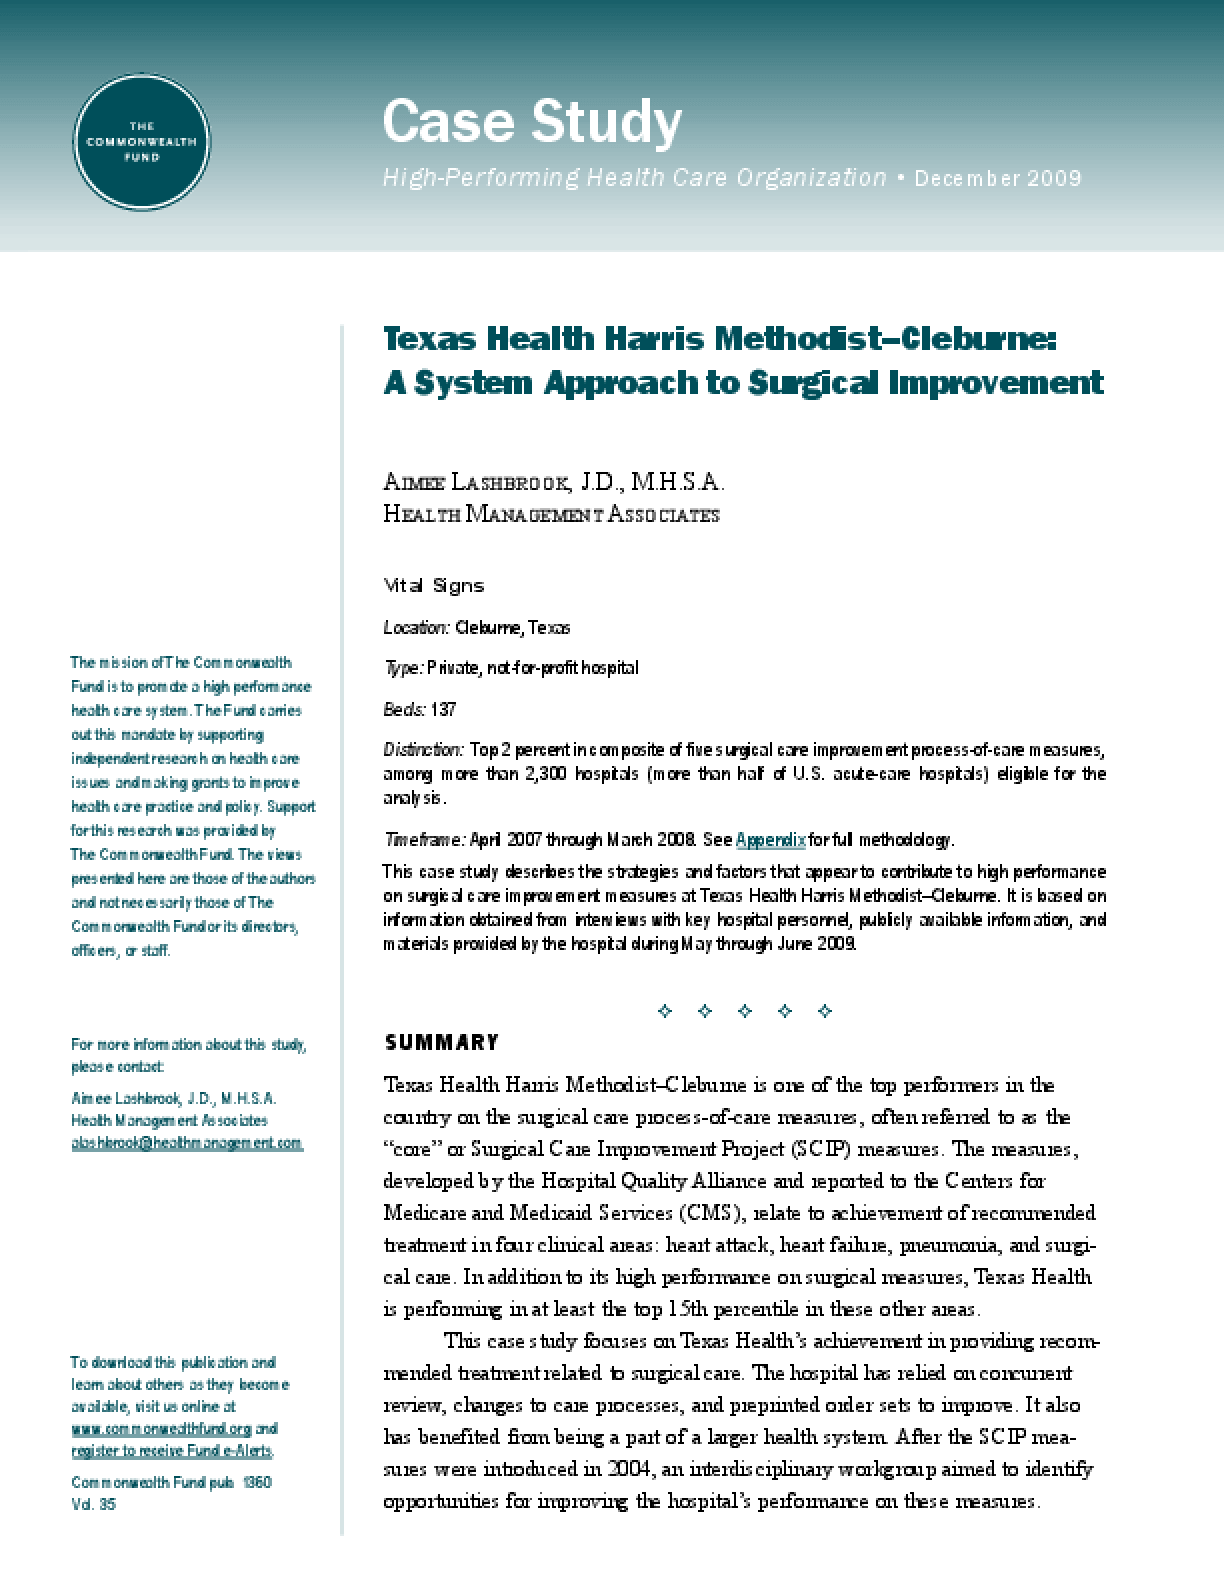 Texas Health Harris Methodist-Cleburne: A System Approach to Surgical Improvement